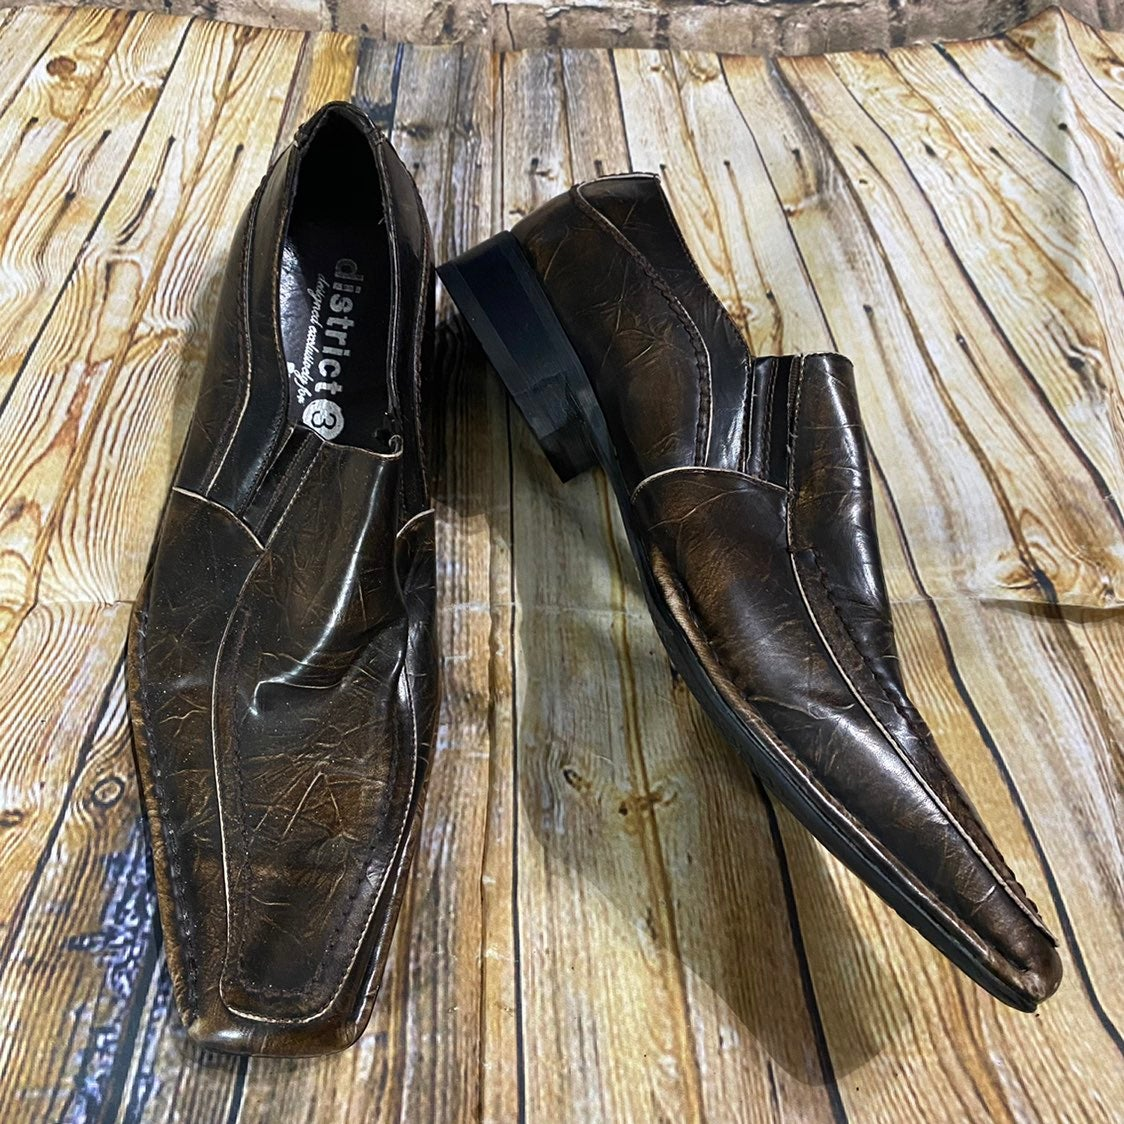 Buckle District 3 Pitheon Loafers SZ 9.5